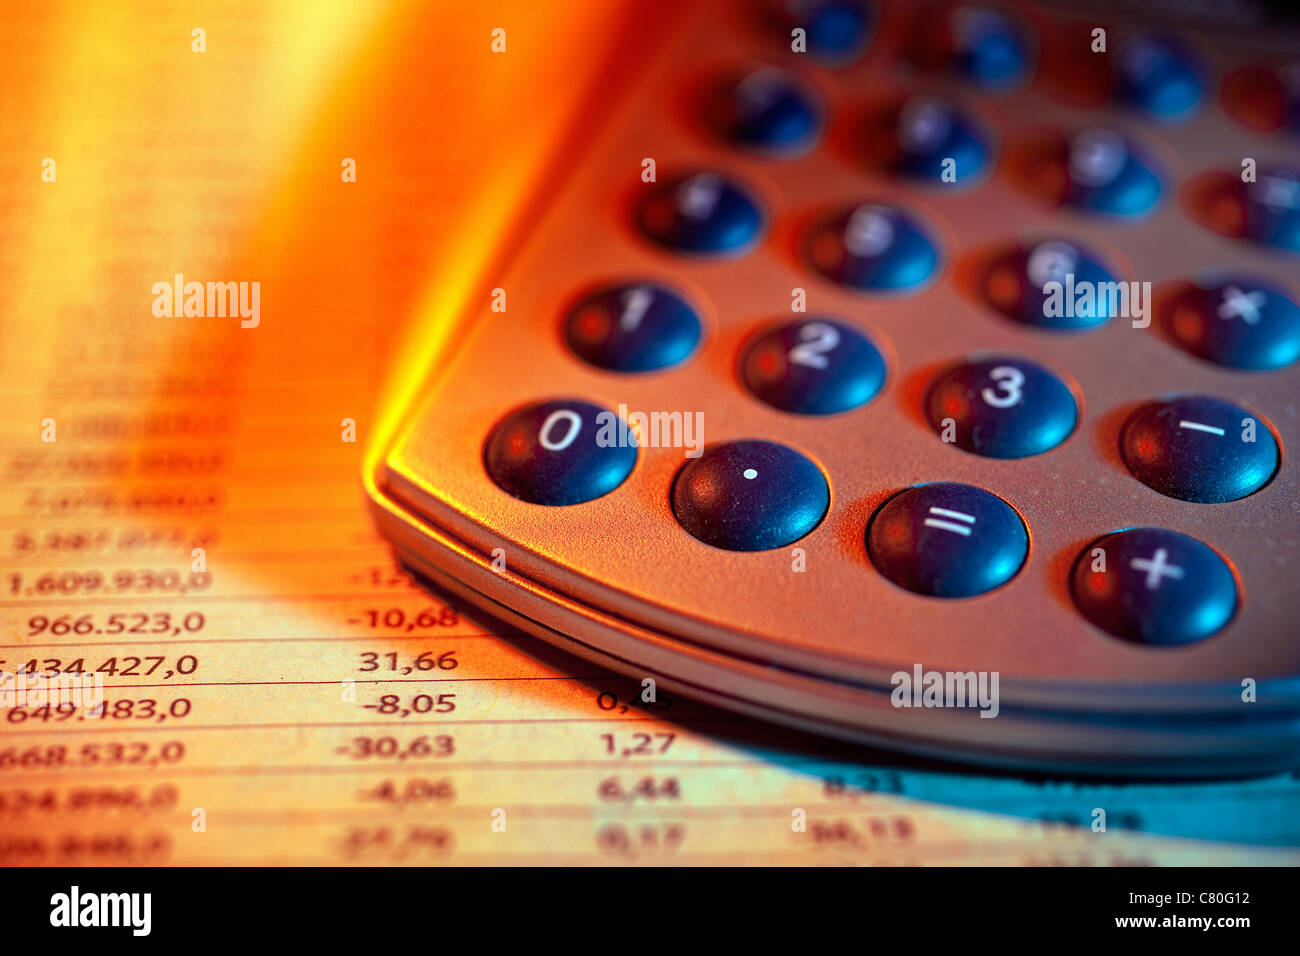 Calculatrice et plan économique Photo Stock